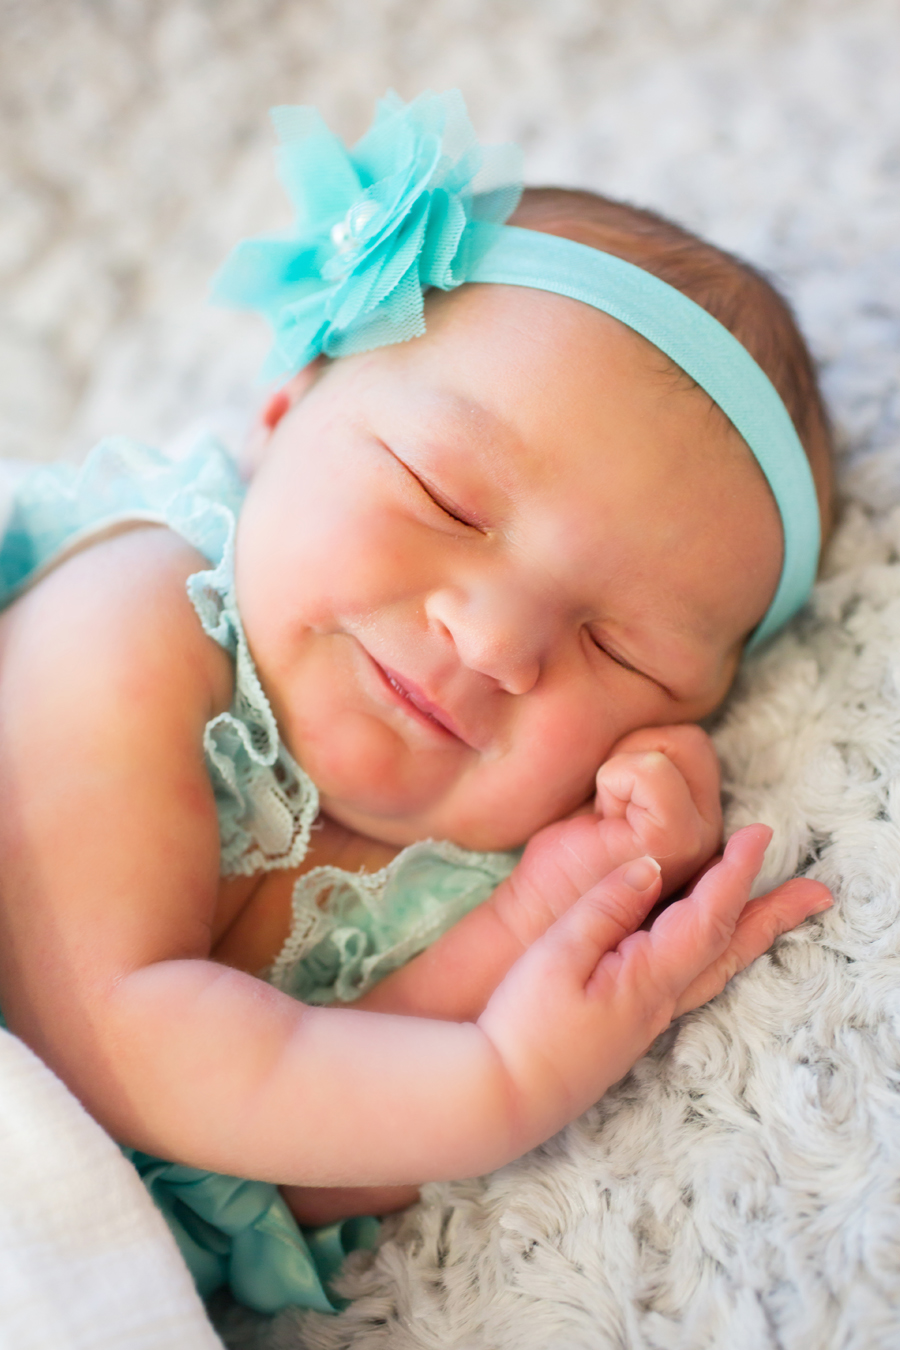 Meet Cutest babies Ever - Cute Babies and Toddlers ...  Most Cute Baby Girl In The World